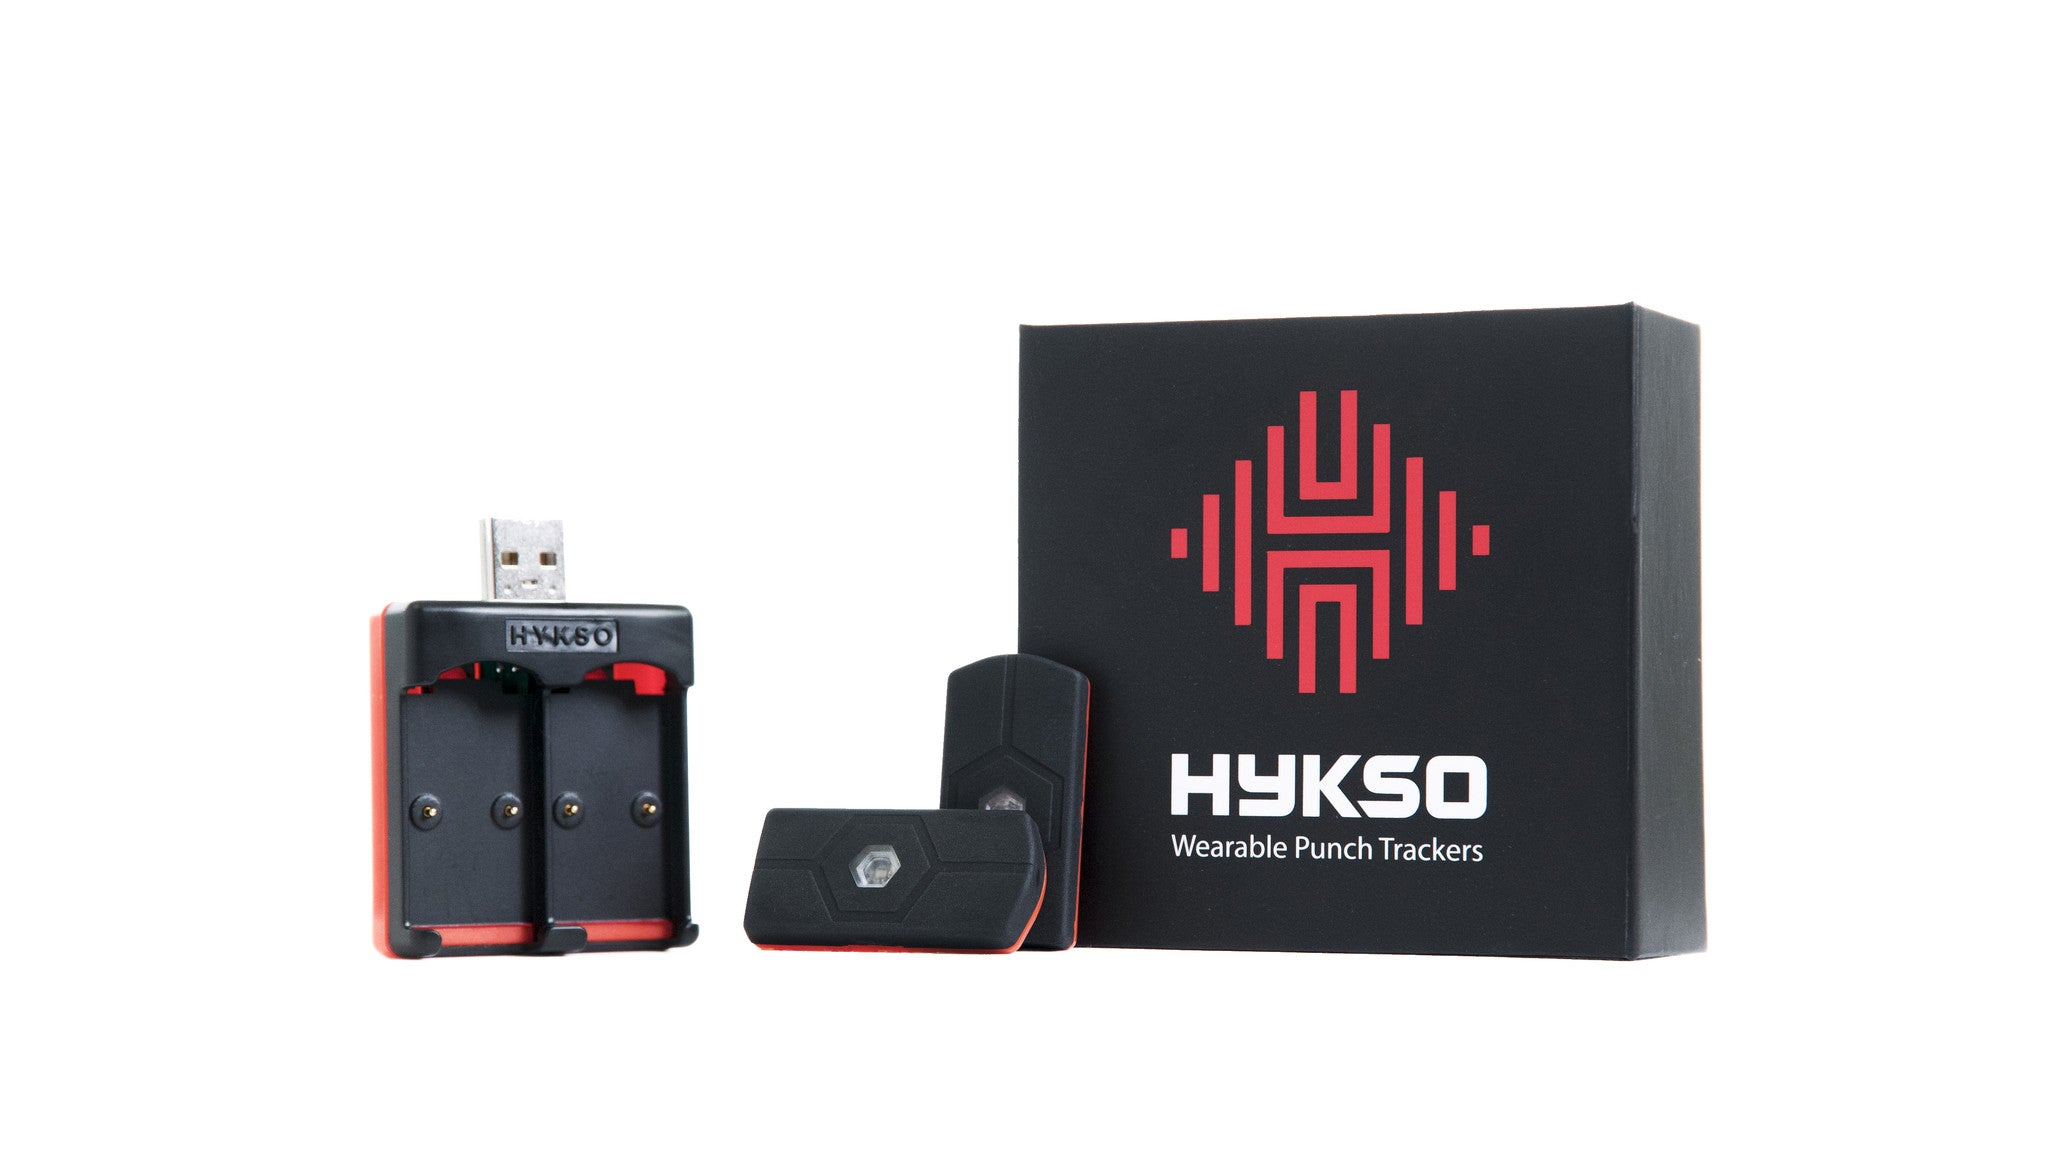 20 Pairs of Hykso Punch Trackers at $122 each for Mick Greany